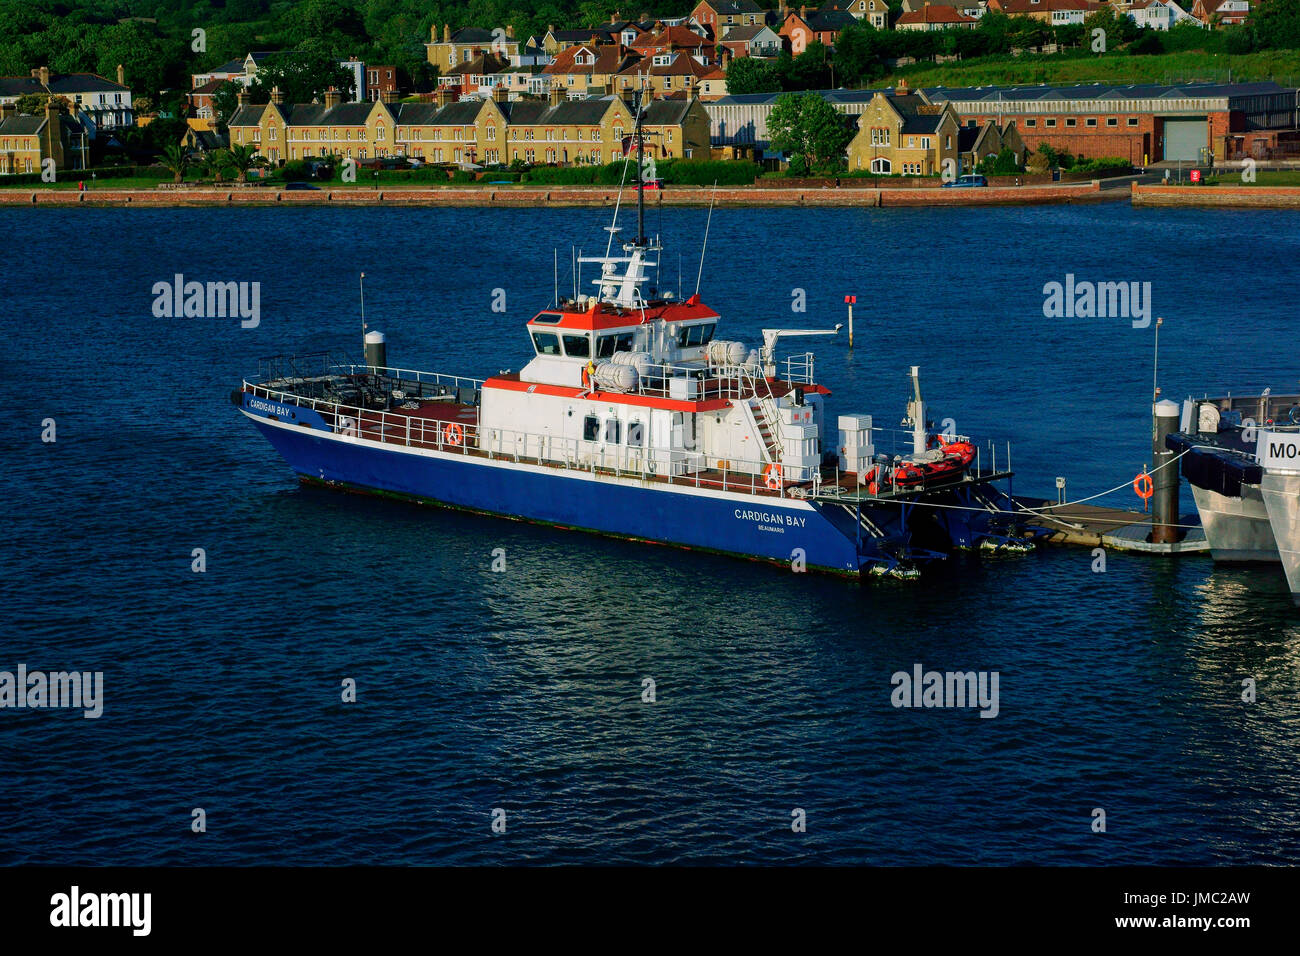 'CARDIGAN BAY' (BEAUMARIS) MOORED EAST COWES. - Stock Image